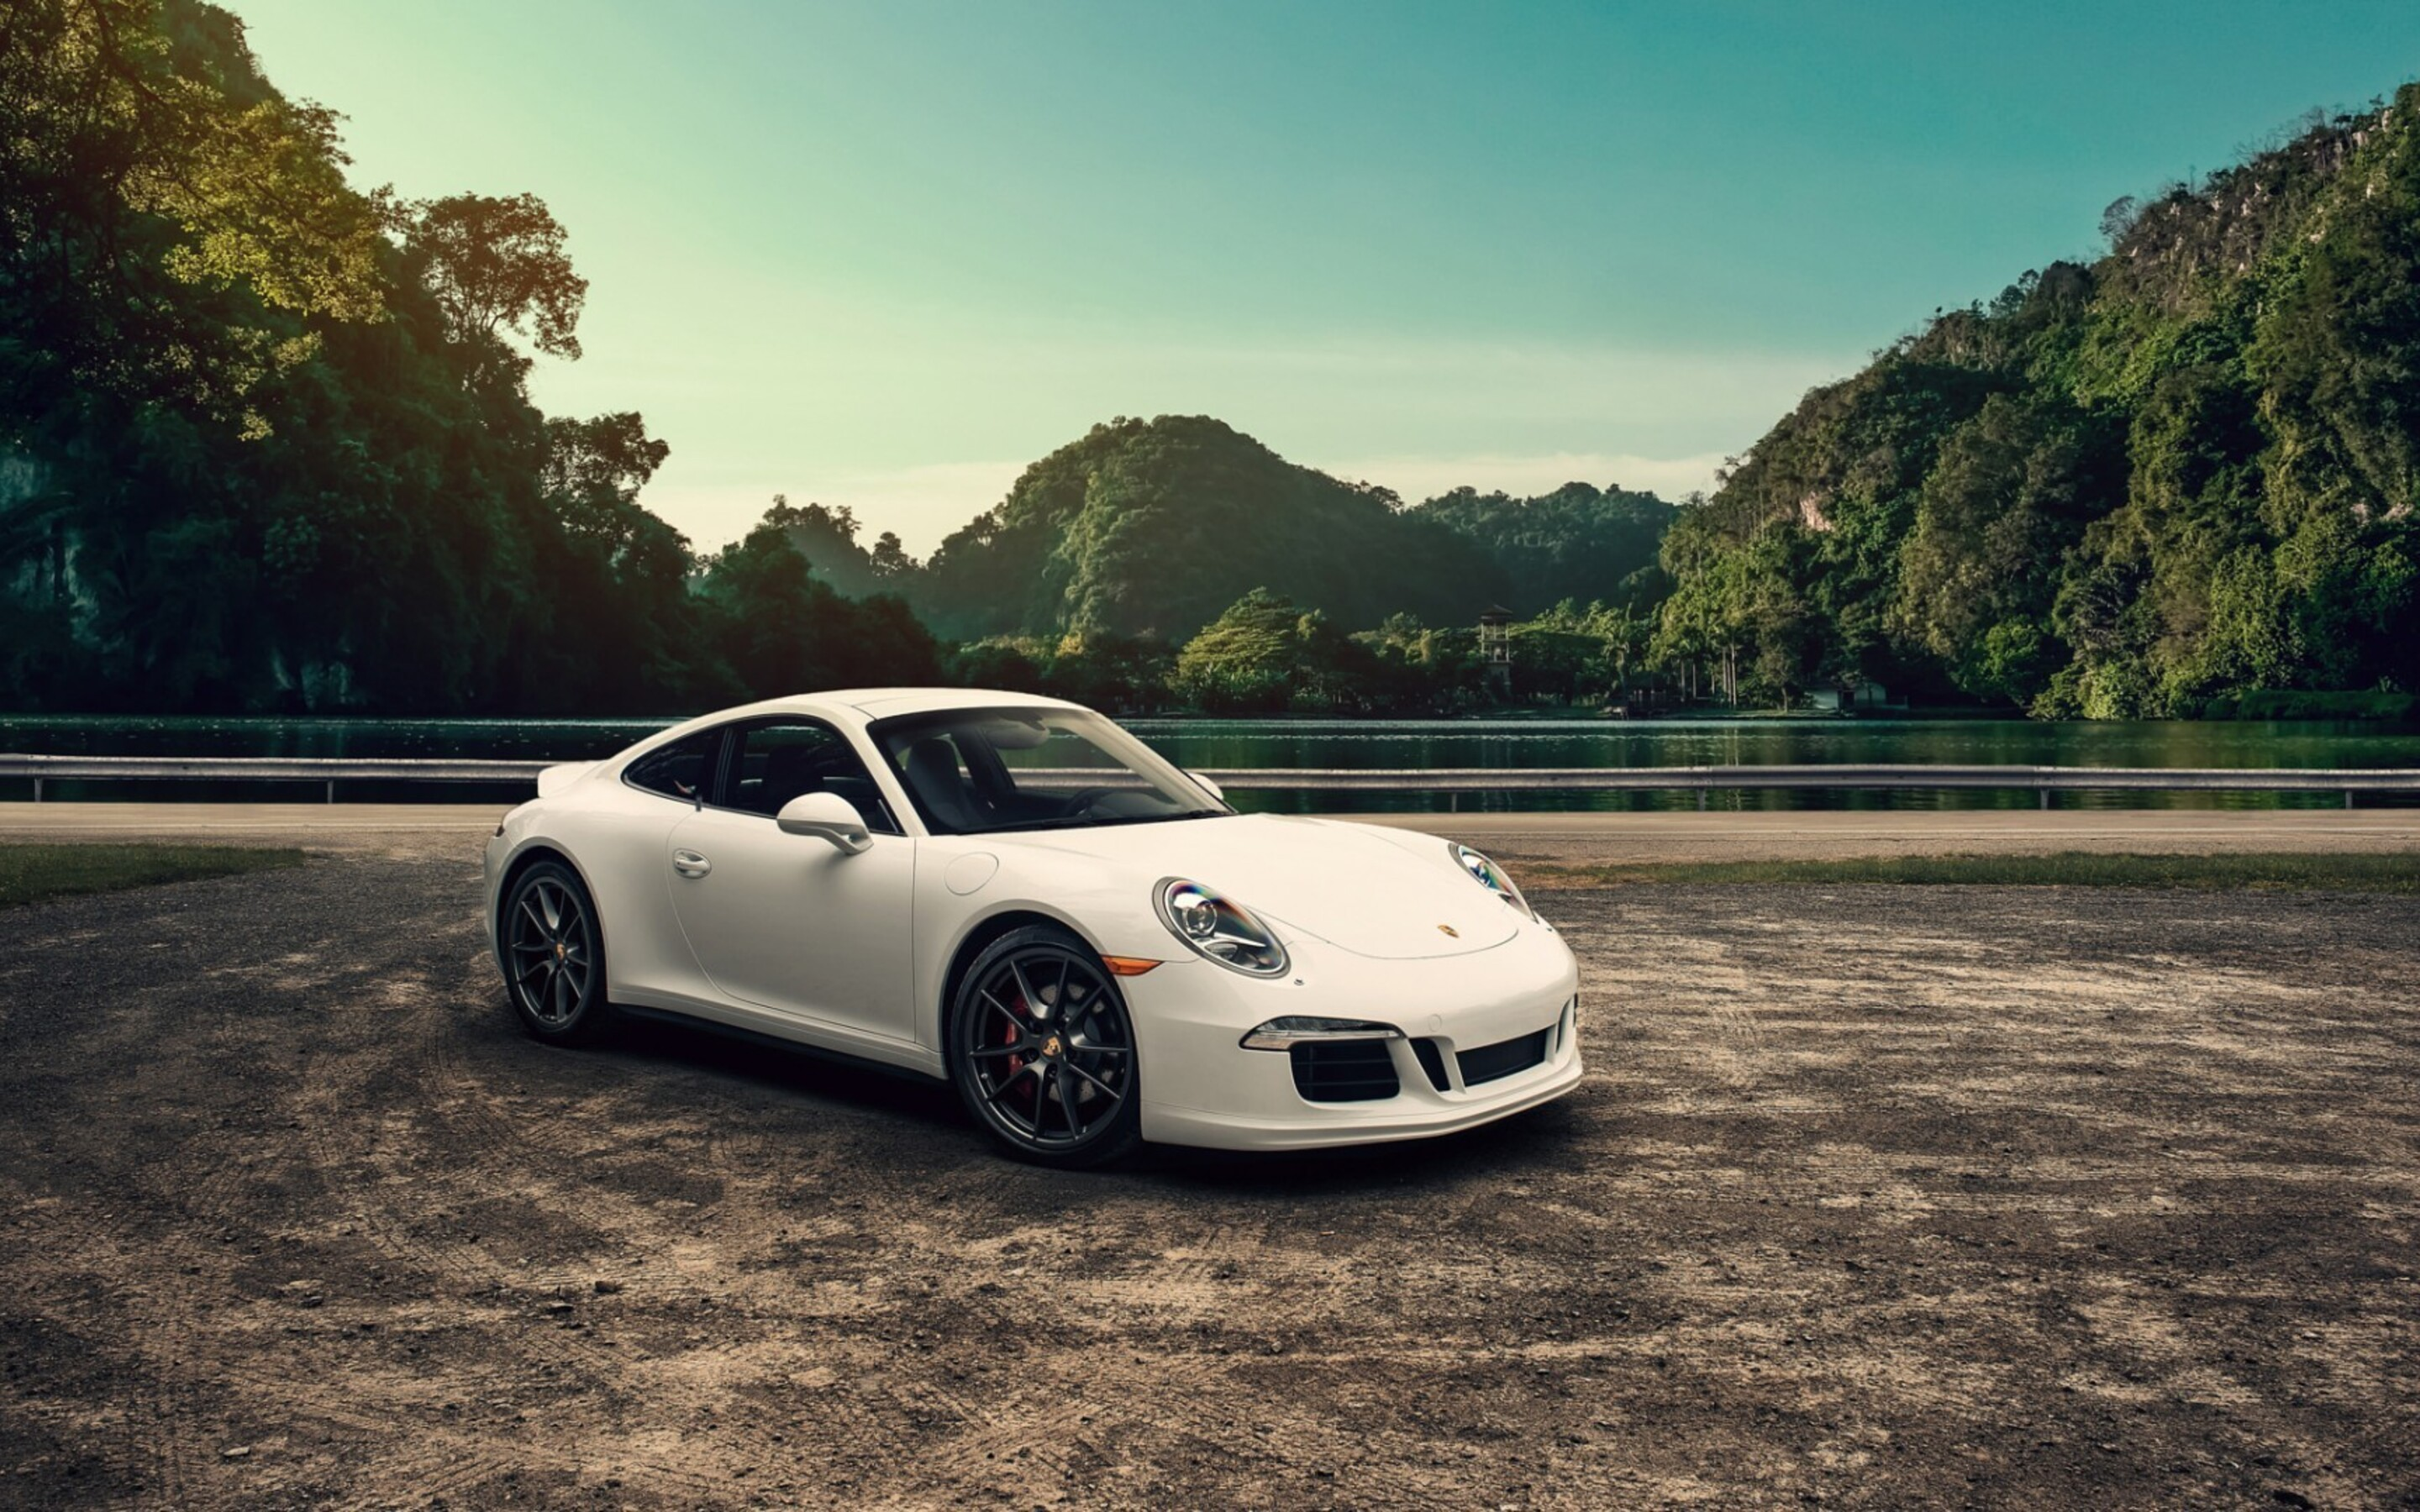 2880x1800 Porsche Macbook Pro Retina Hd 4k Wallpapers Images Backgrounds Photos And Pictures